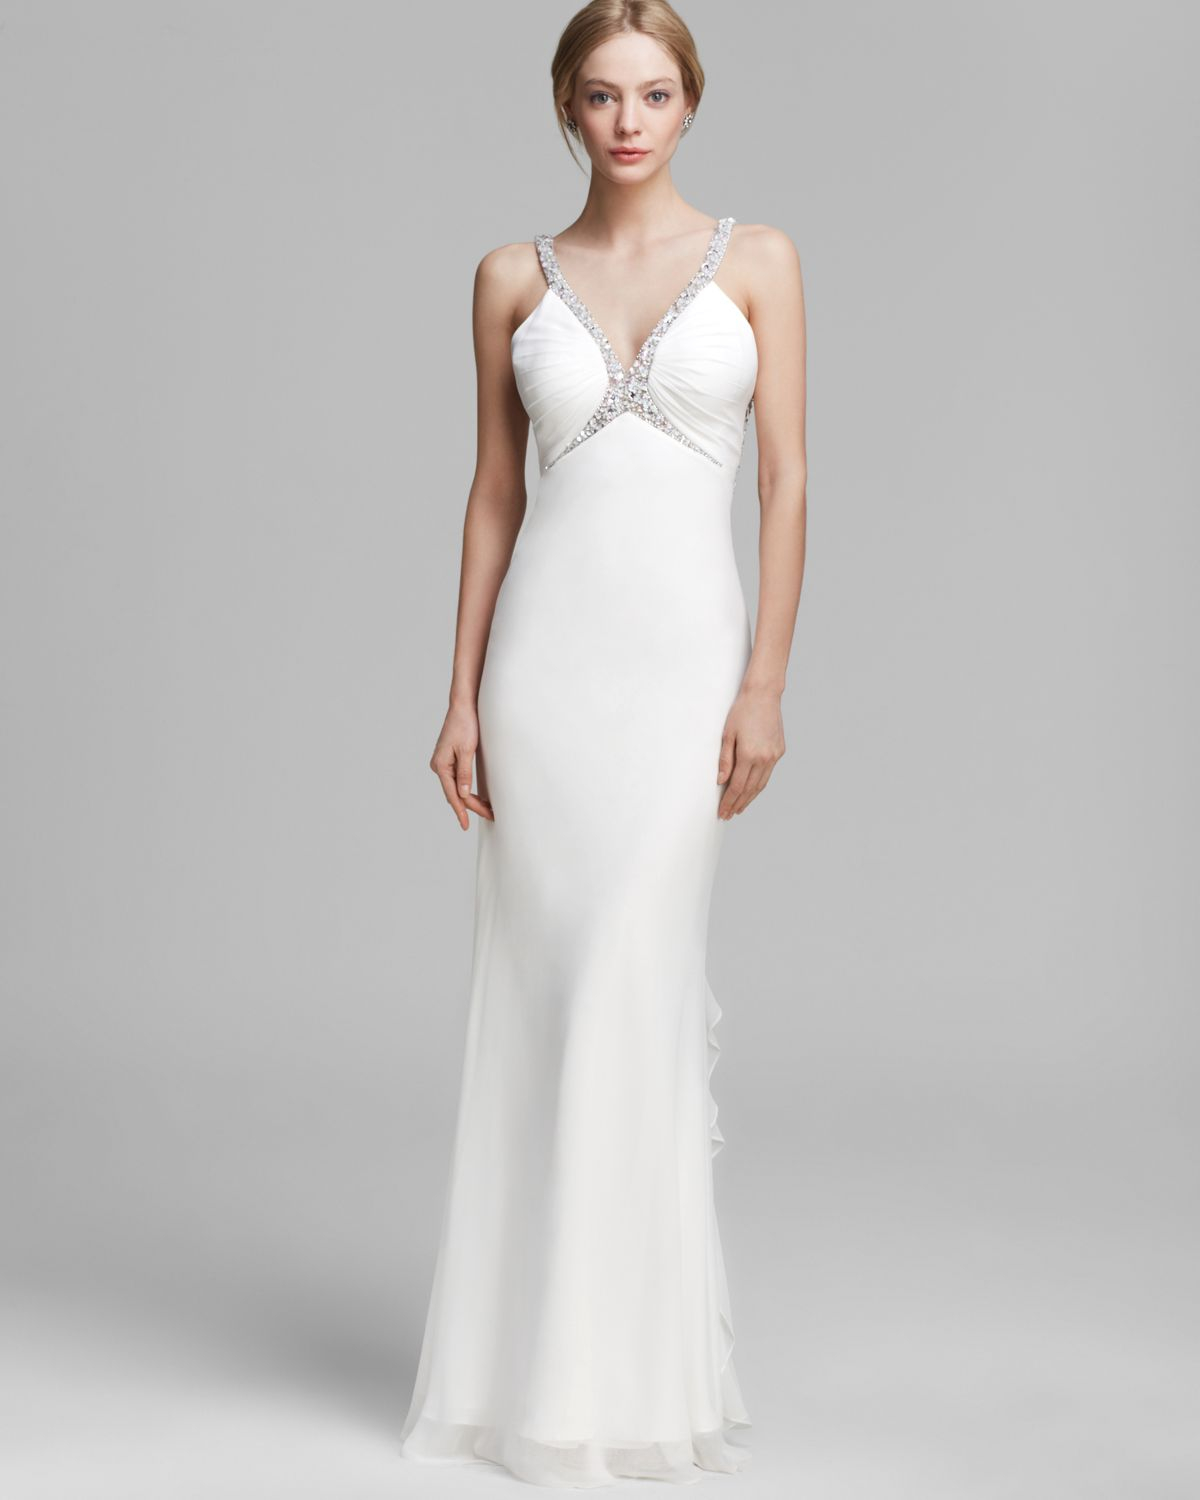 Lyst - Faviana Couture Gown V Neck Beaded Ruffle Back in White